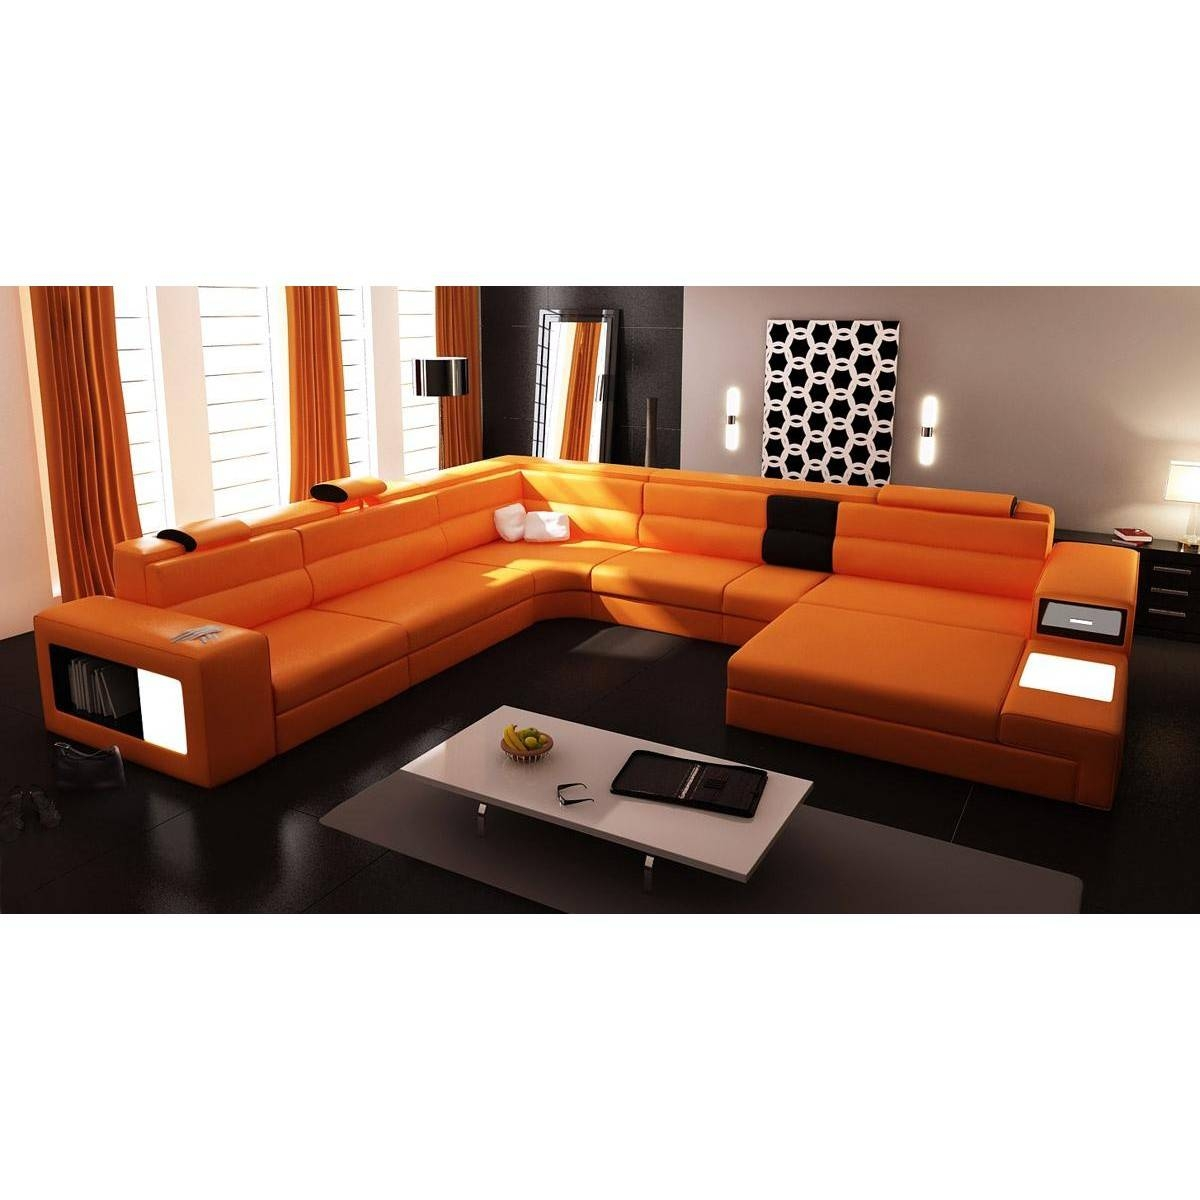 Contemporary & Luxury Furniture; Living Room, Bedroom,la Furniture throughout Orange Sectional Sofas (Image 6 of 15)